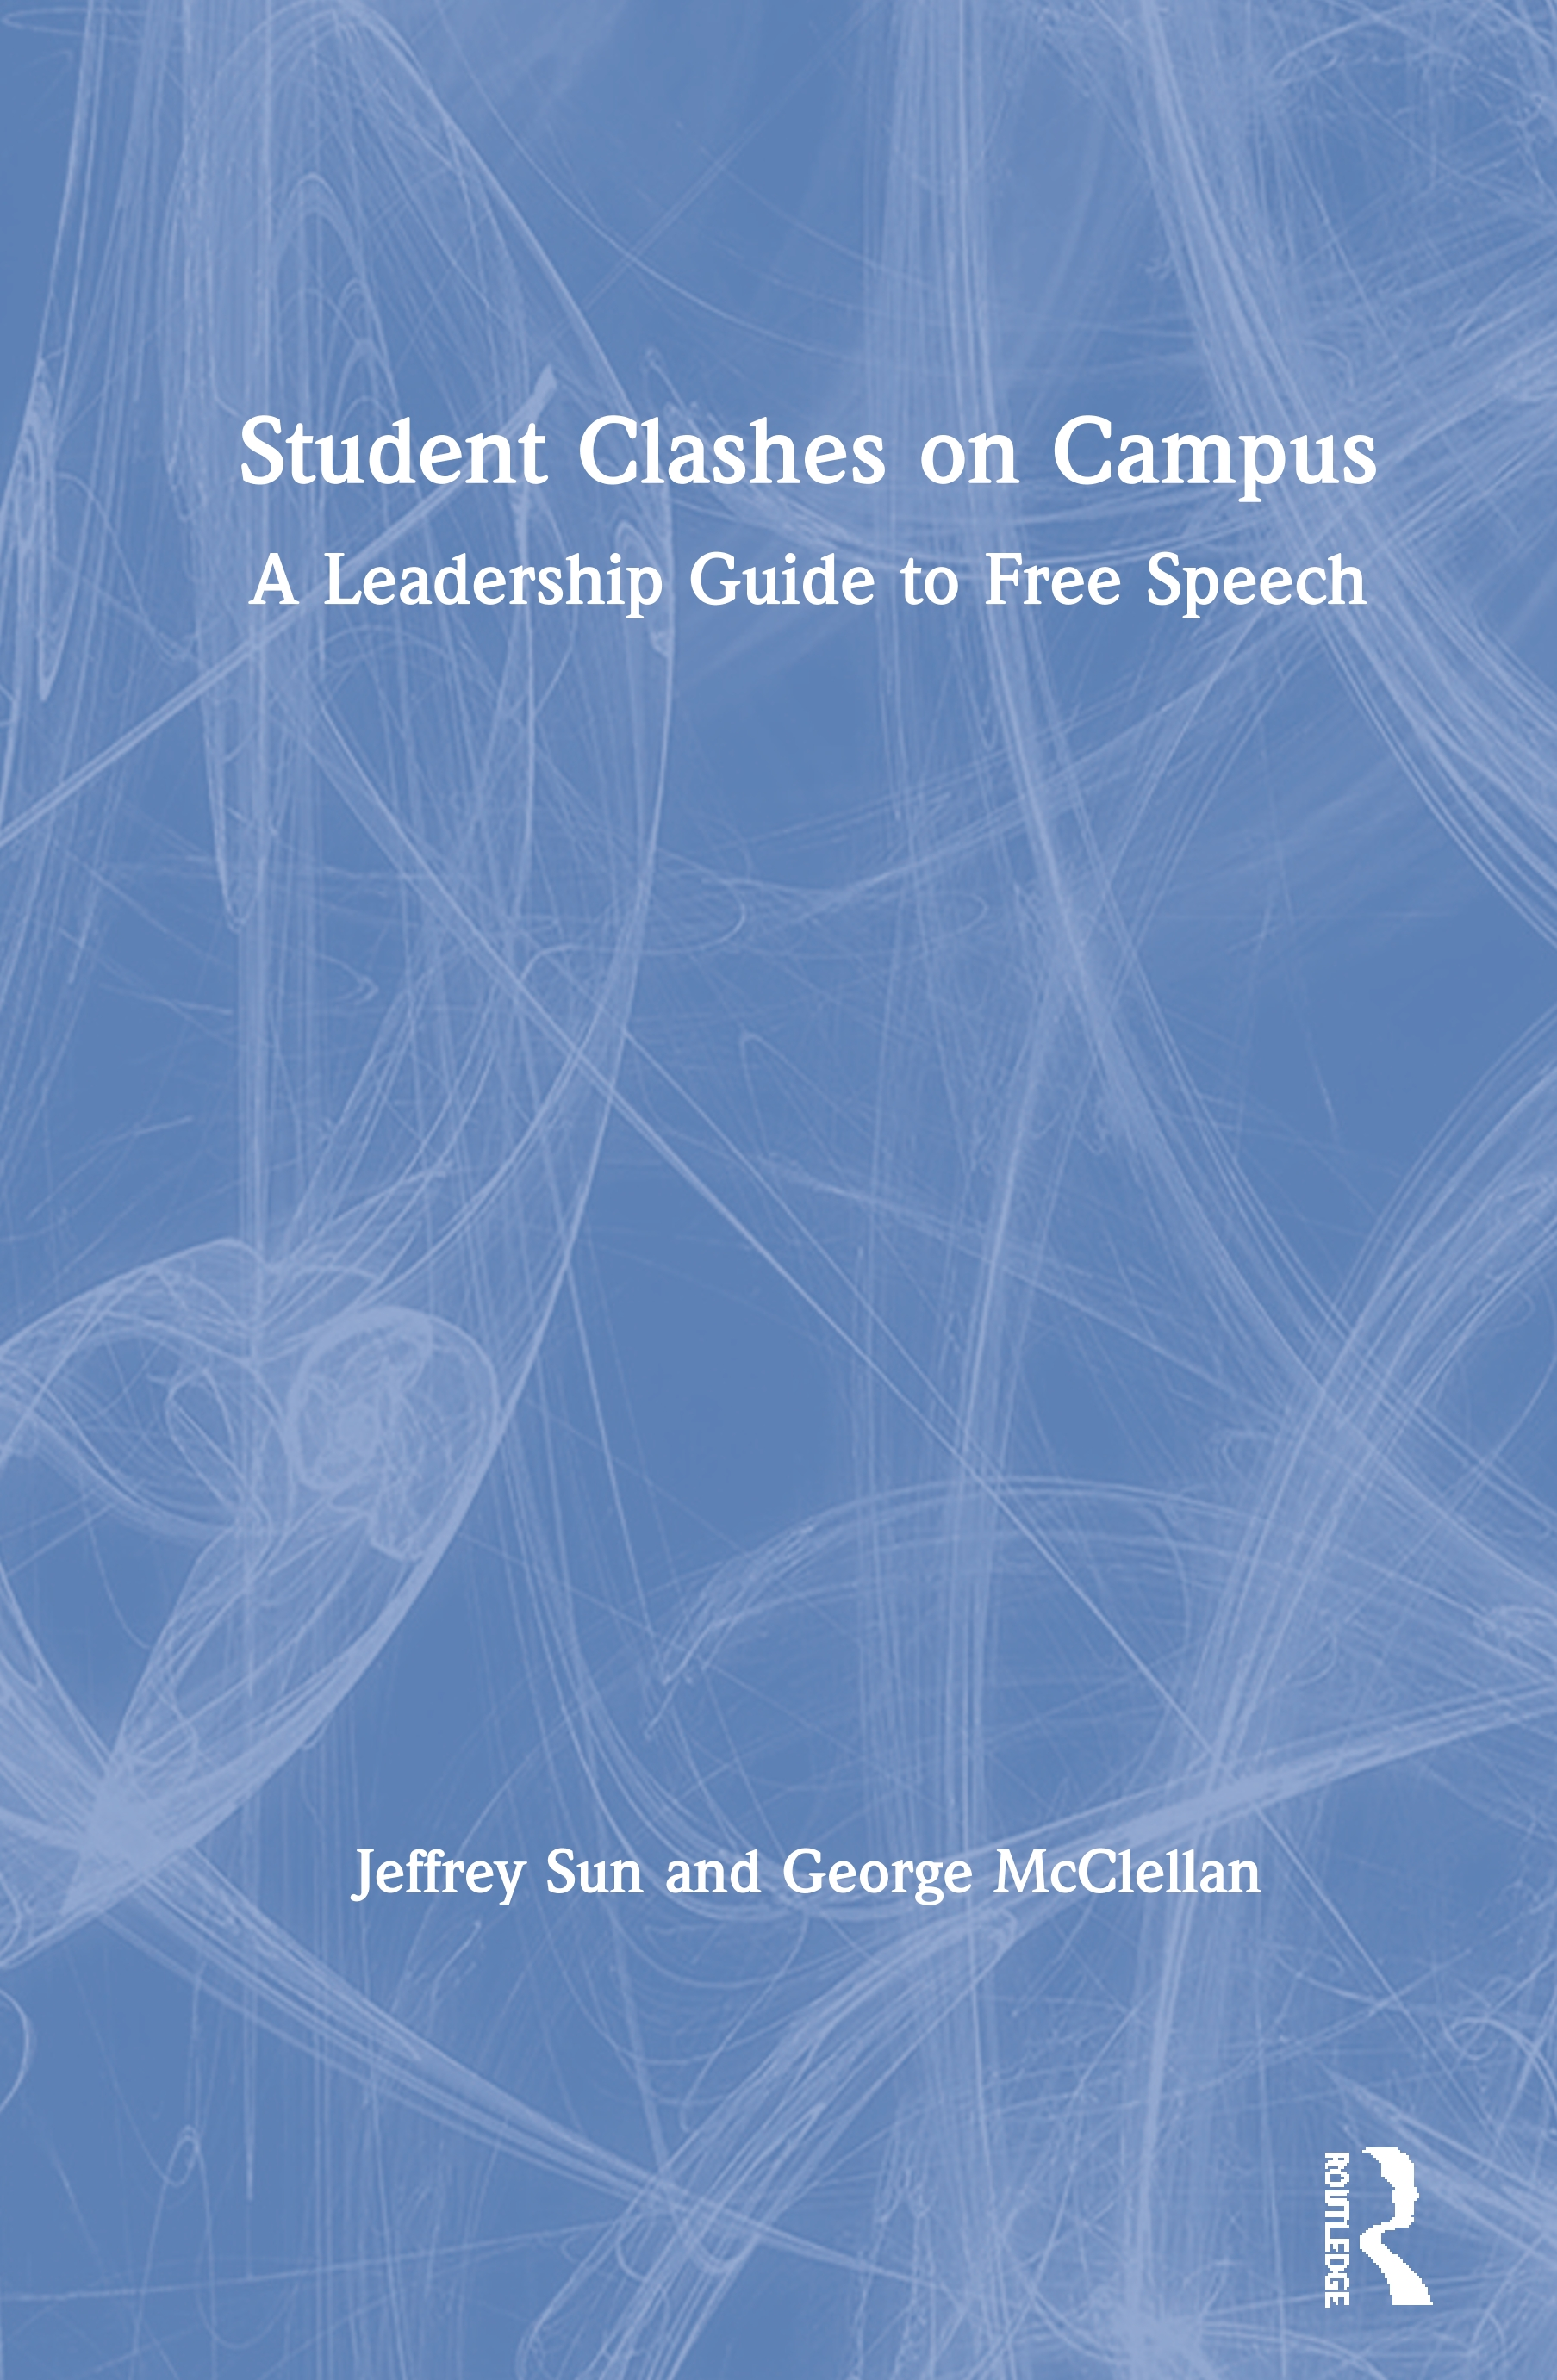 Student Clashes on Campus: A Leadership Guide to Free Speech book cover